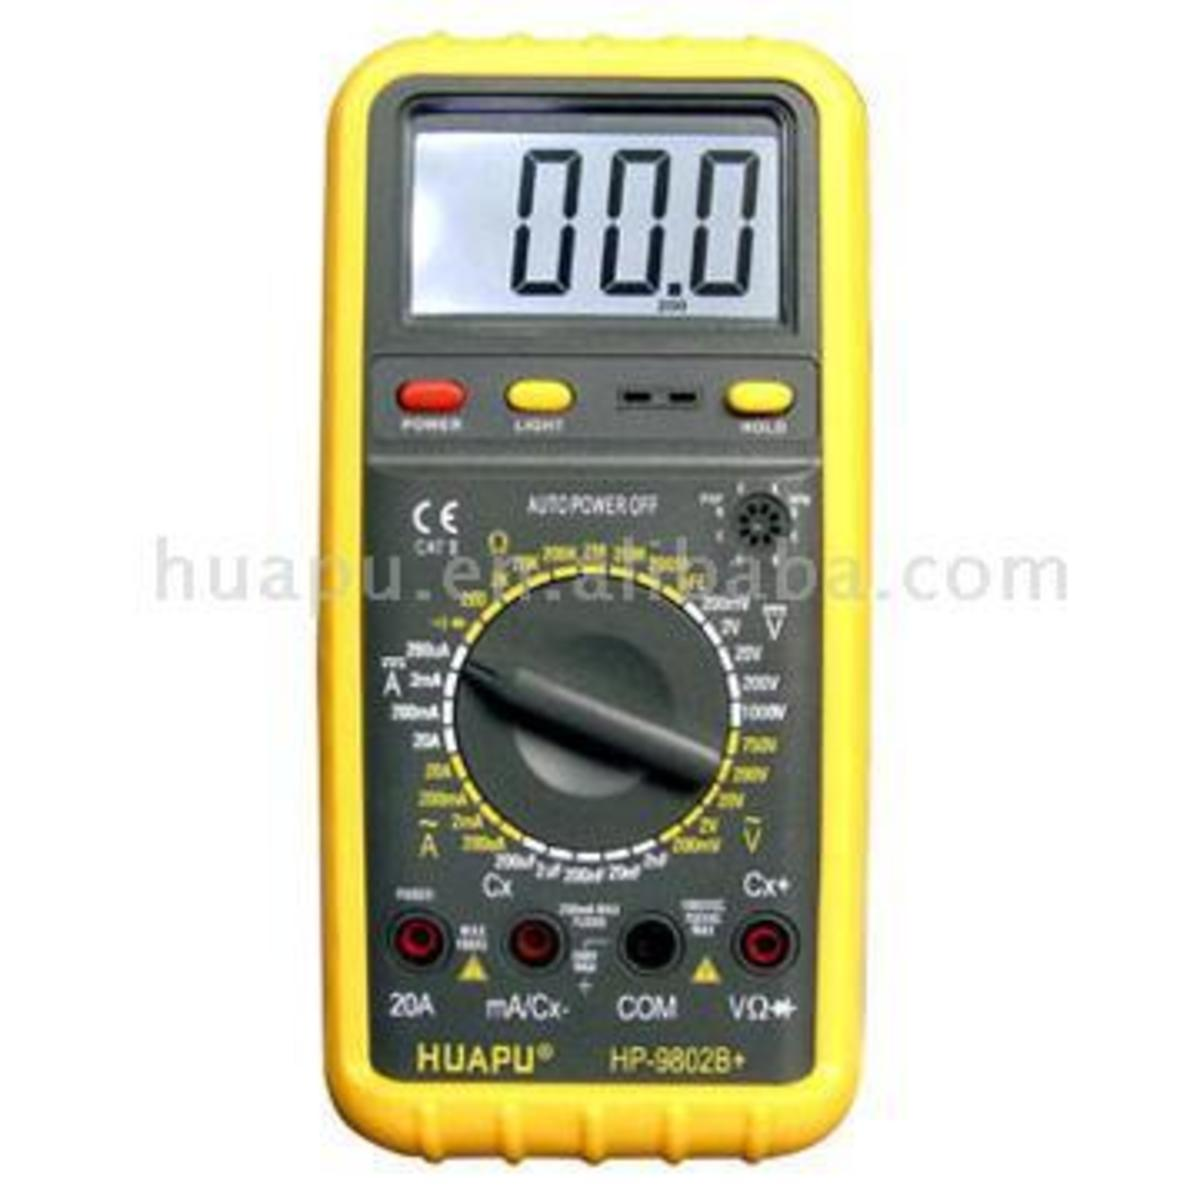 how to use a digital multimeter on a dryer